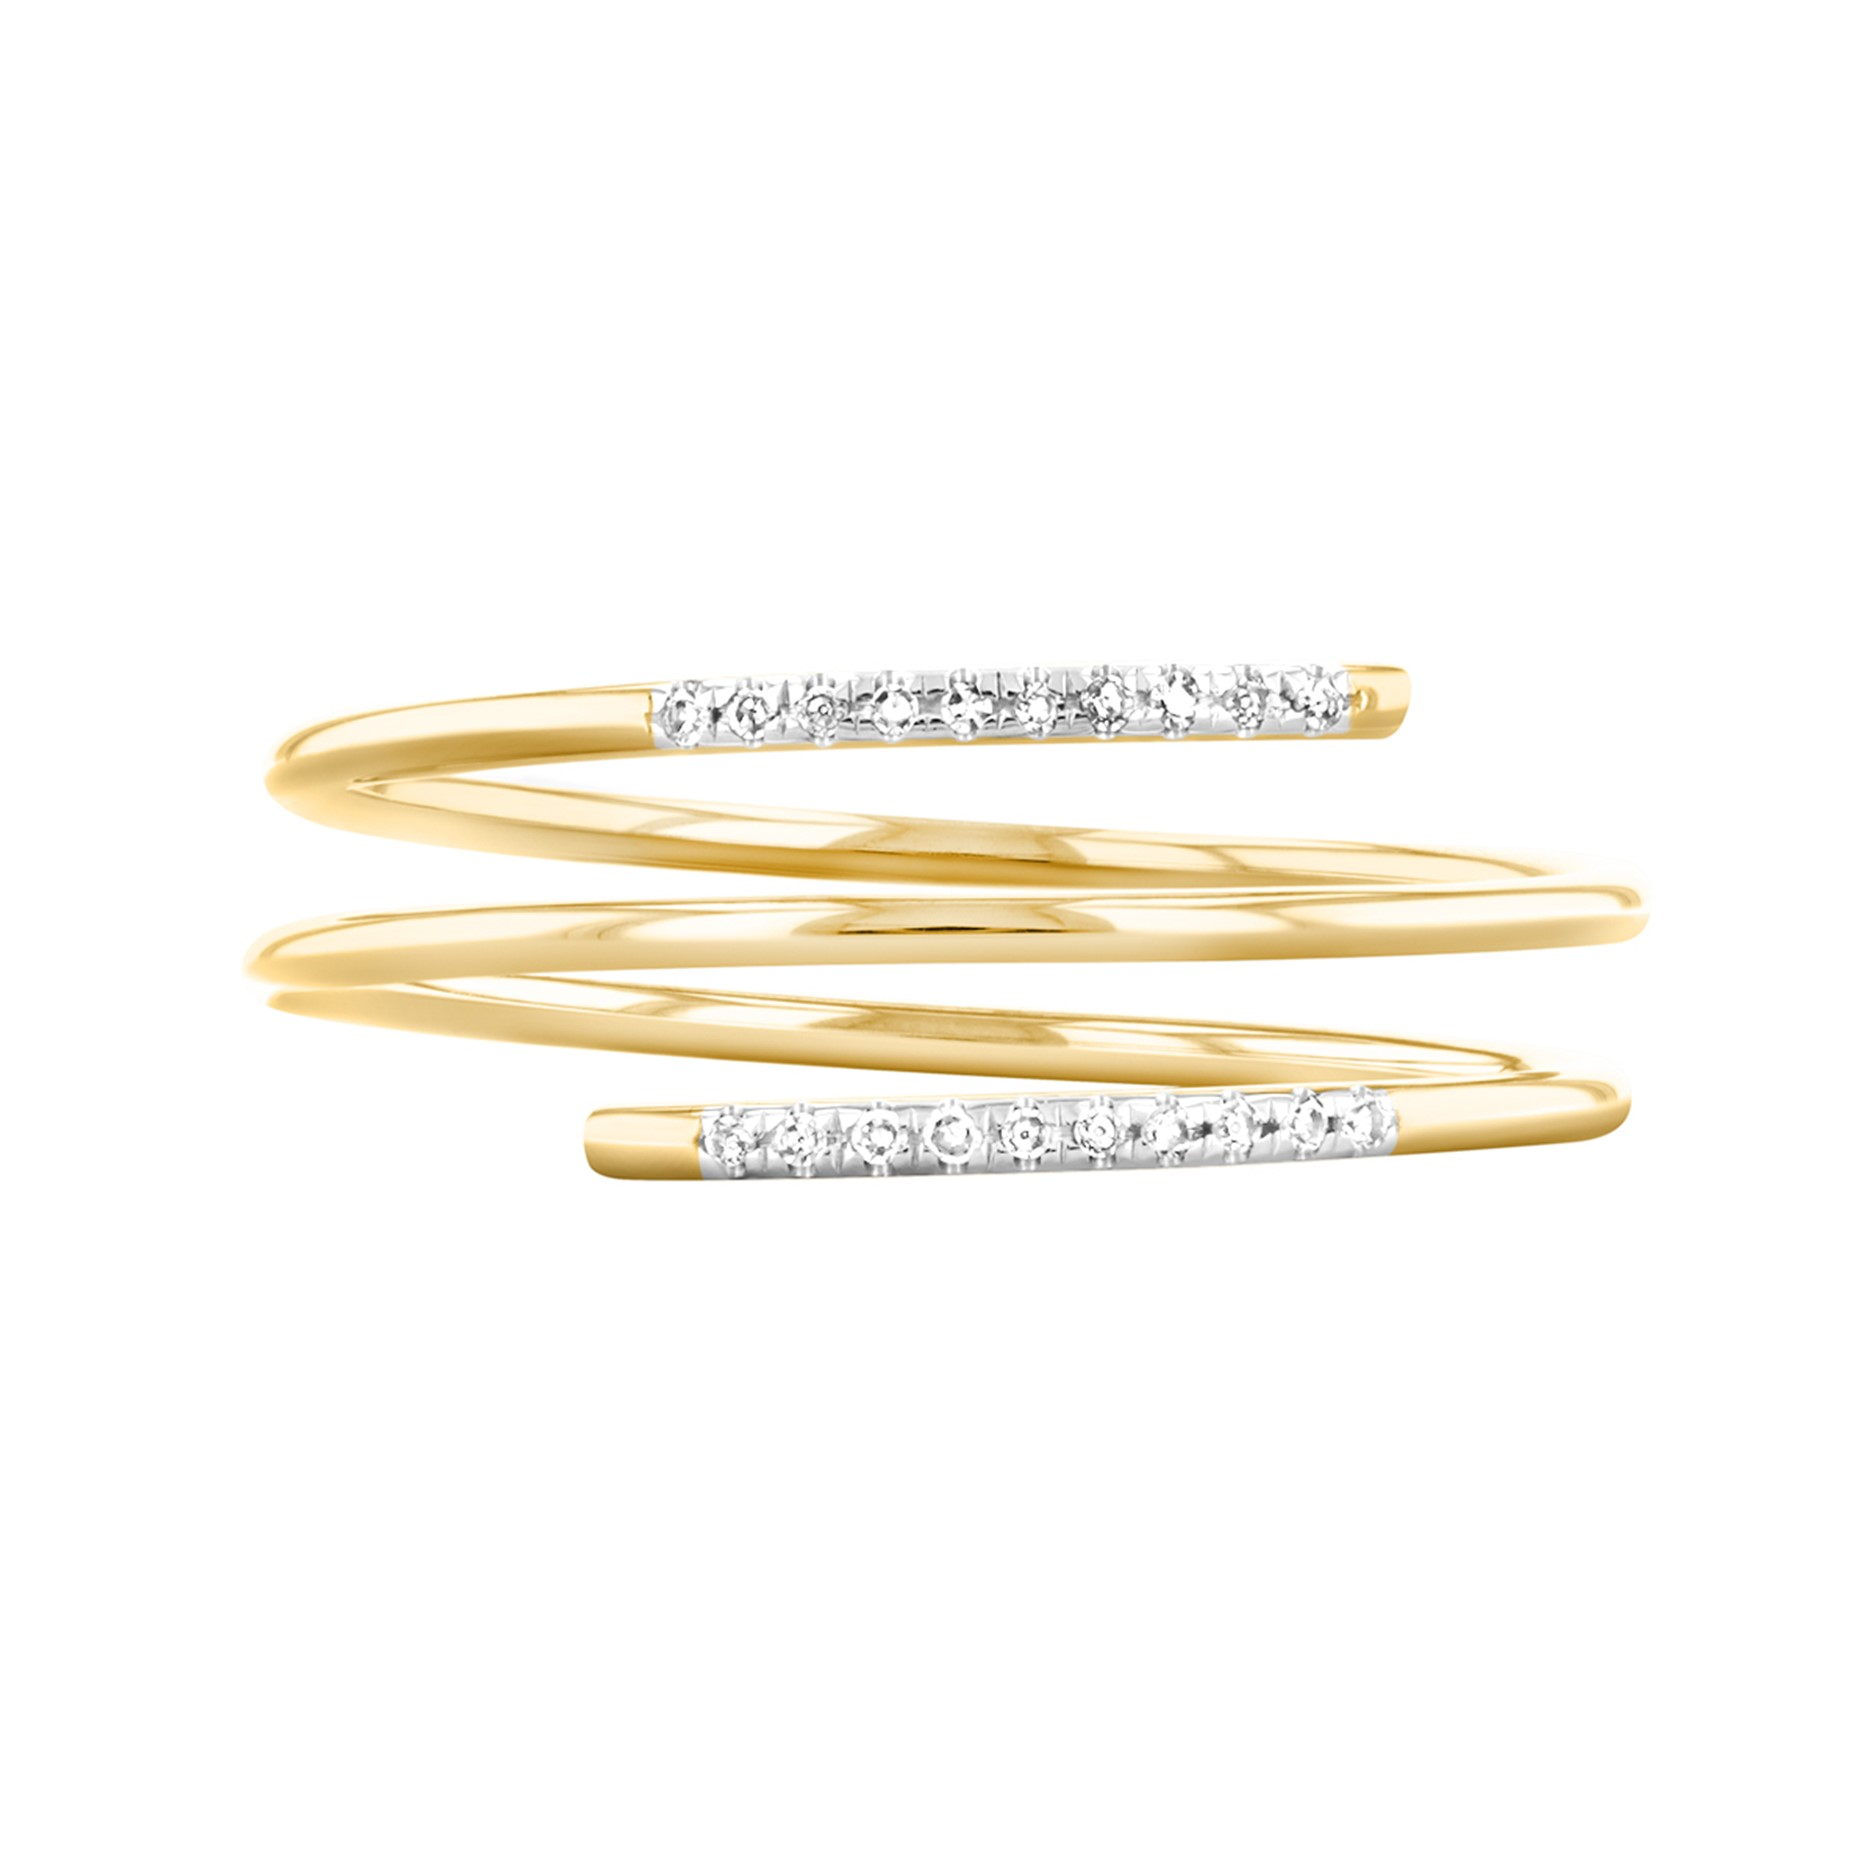 Soleil Collection Diamond Spiral Ring   9K Yellow Gold